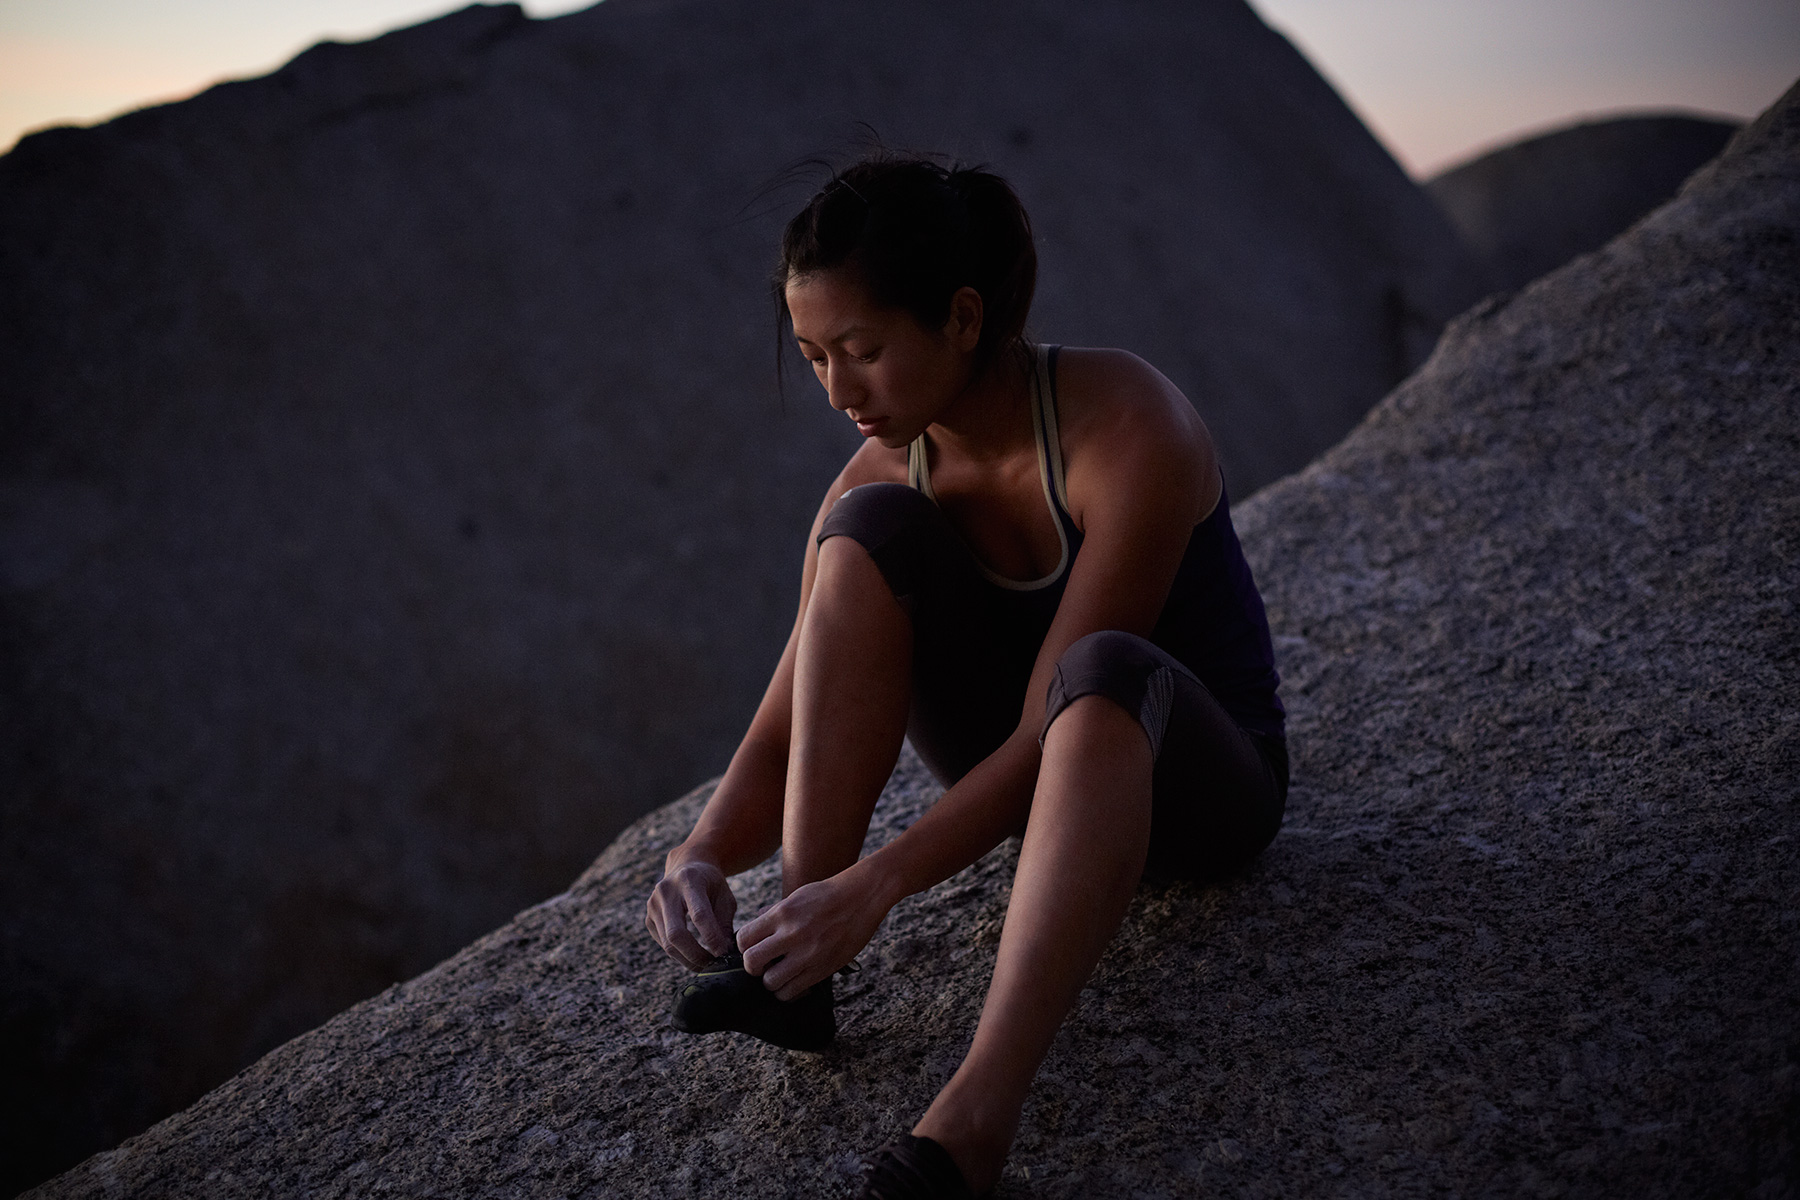 Female climber sitting on big boulder, tying shoes a